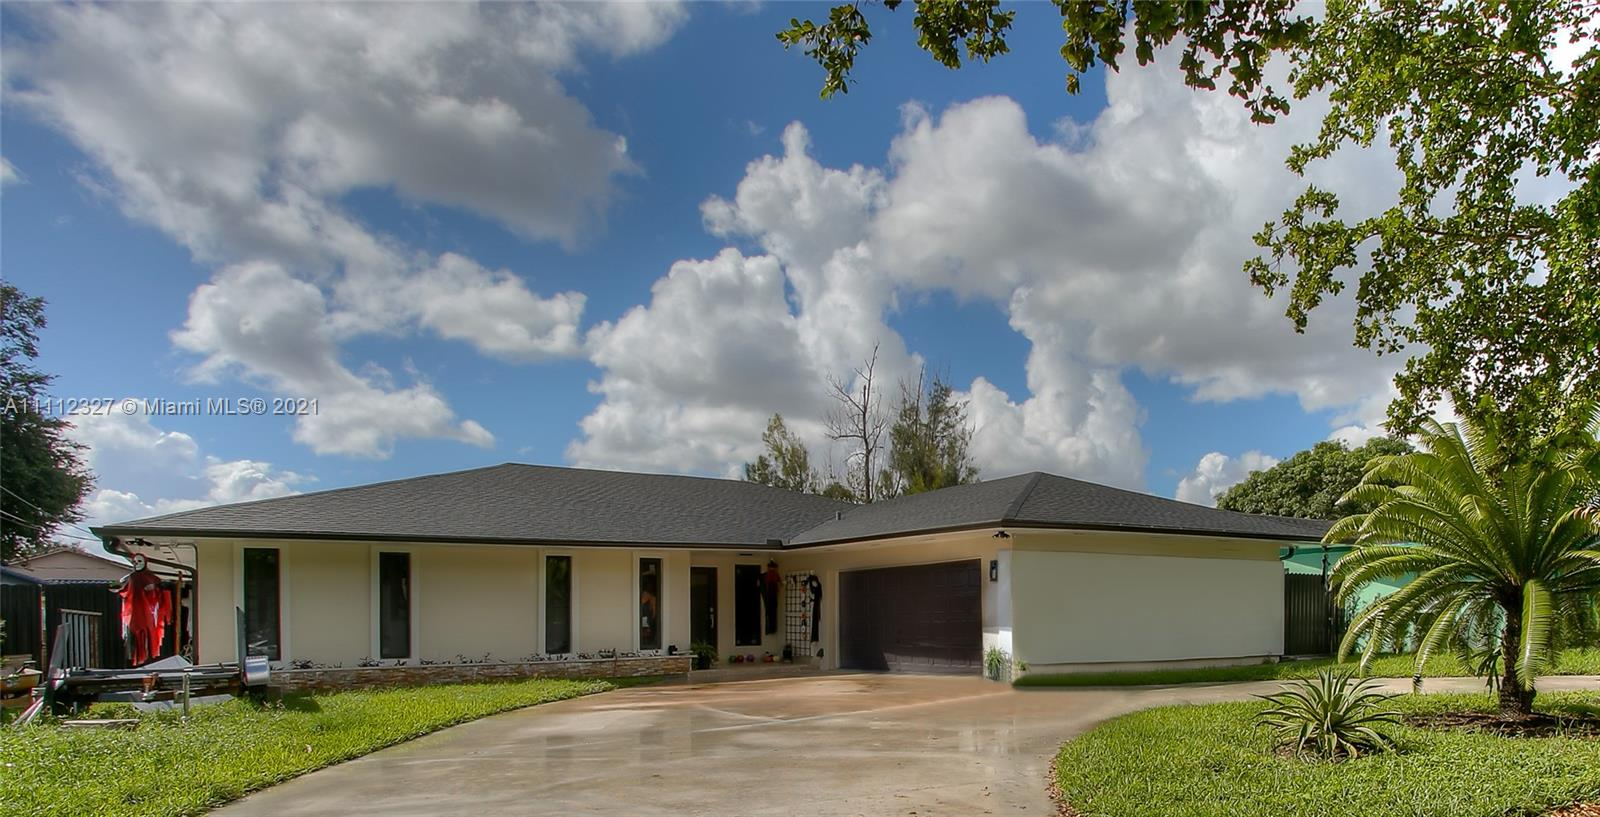 Single Family Home,For Sale,1930 NW 175th St, Miami Gardens, Florida 33056,Brickell,realty,broker,condos near me